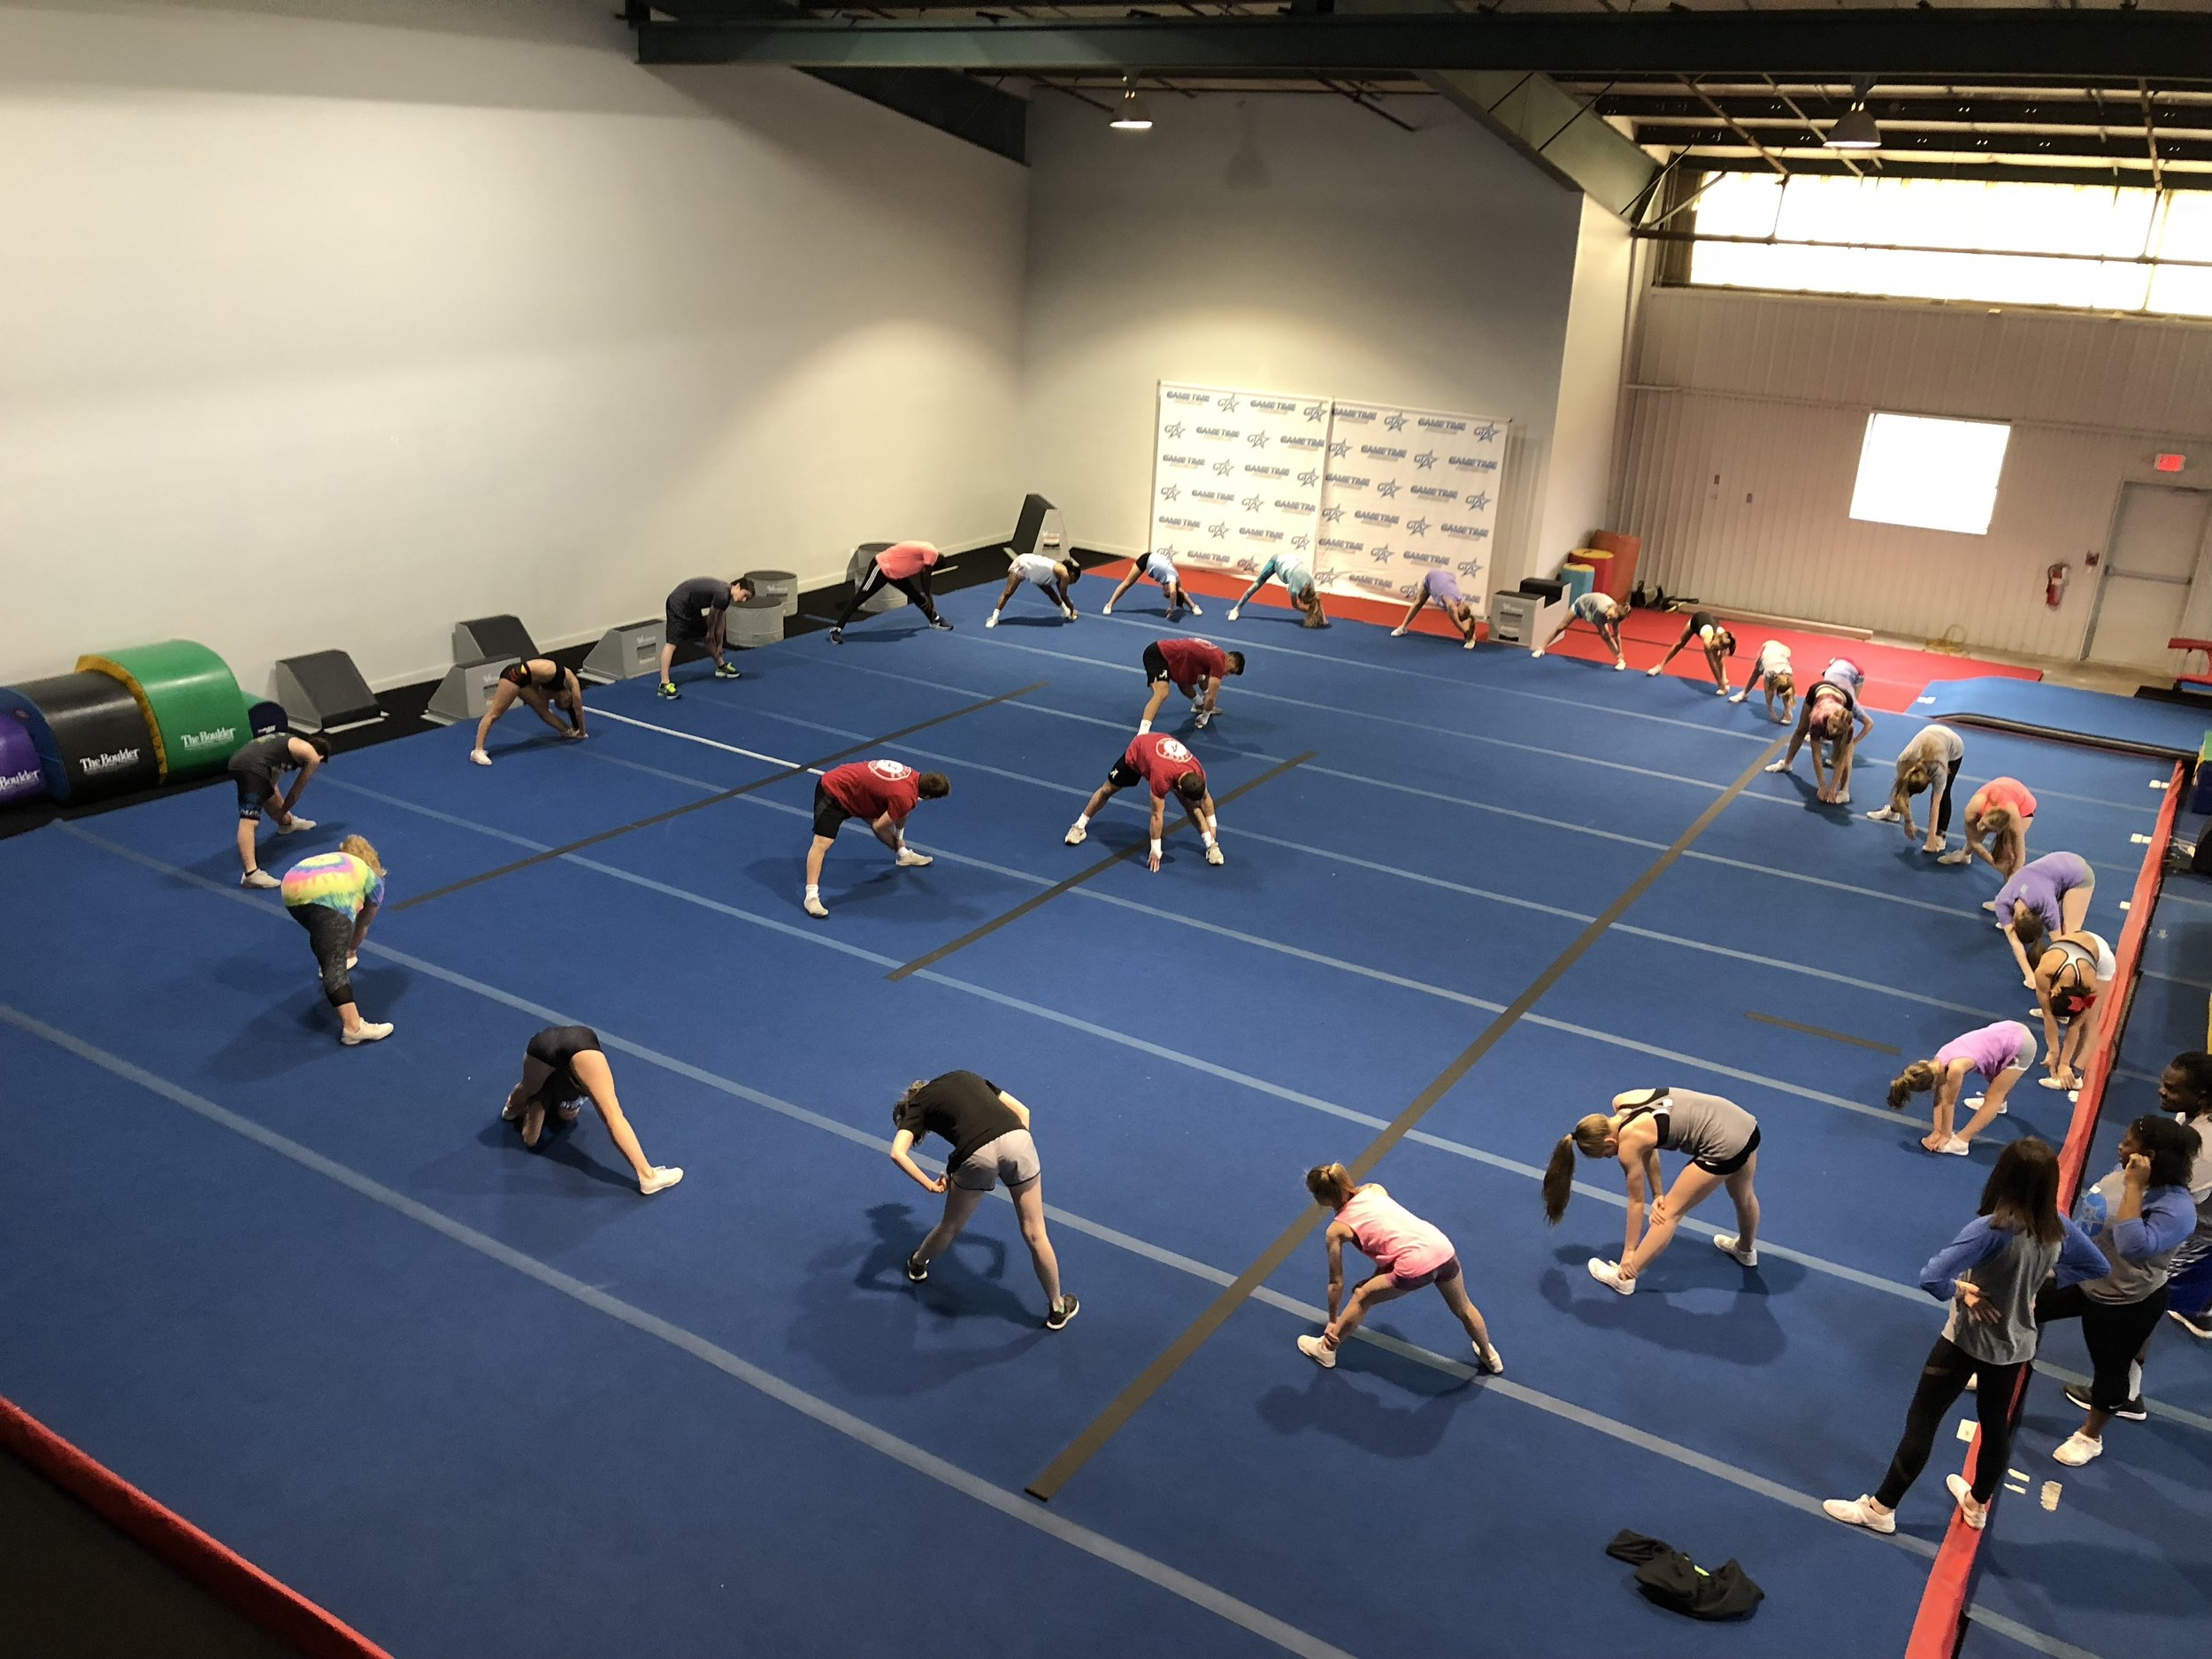 Tumbling Classes - Our tumbling classes are typically one hour and meet once a week to train small groups of athletes working on similar skills.